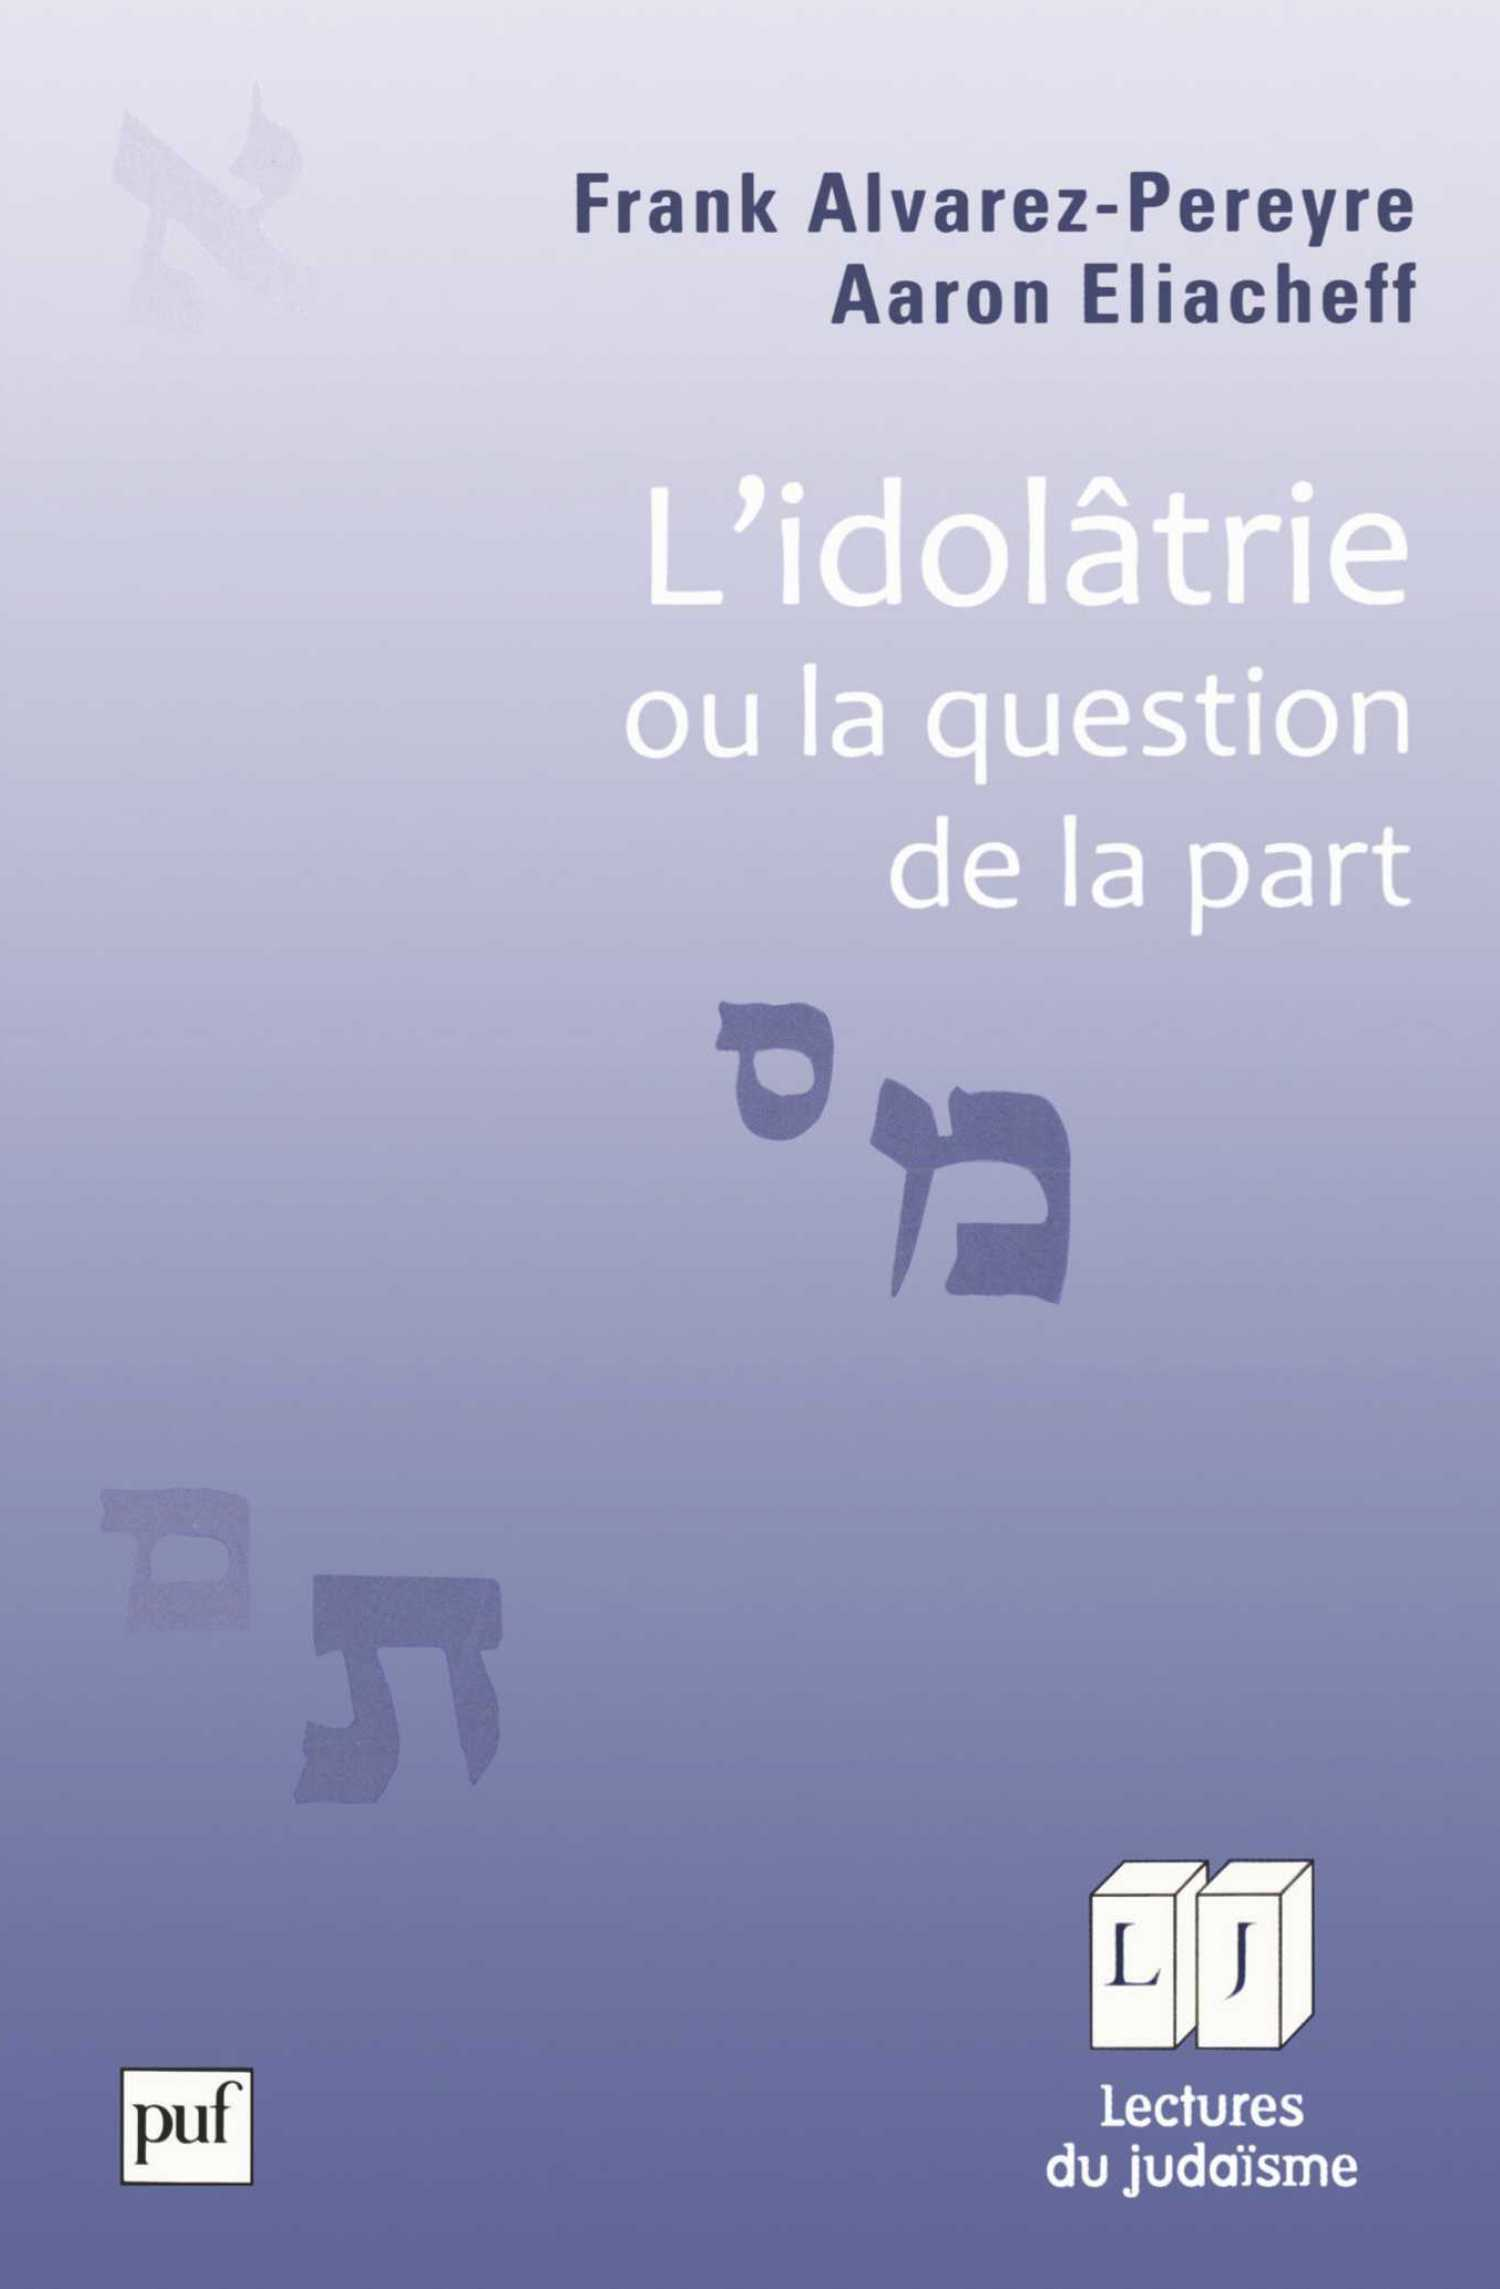 L'idolâtrie, ou la question de la part